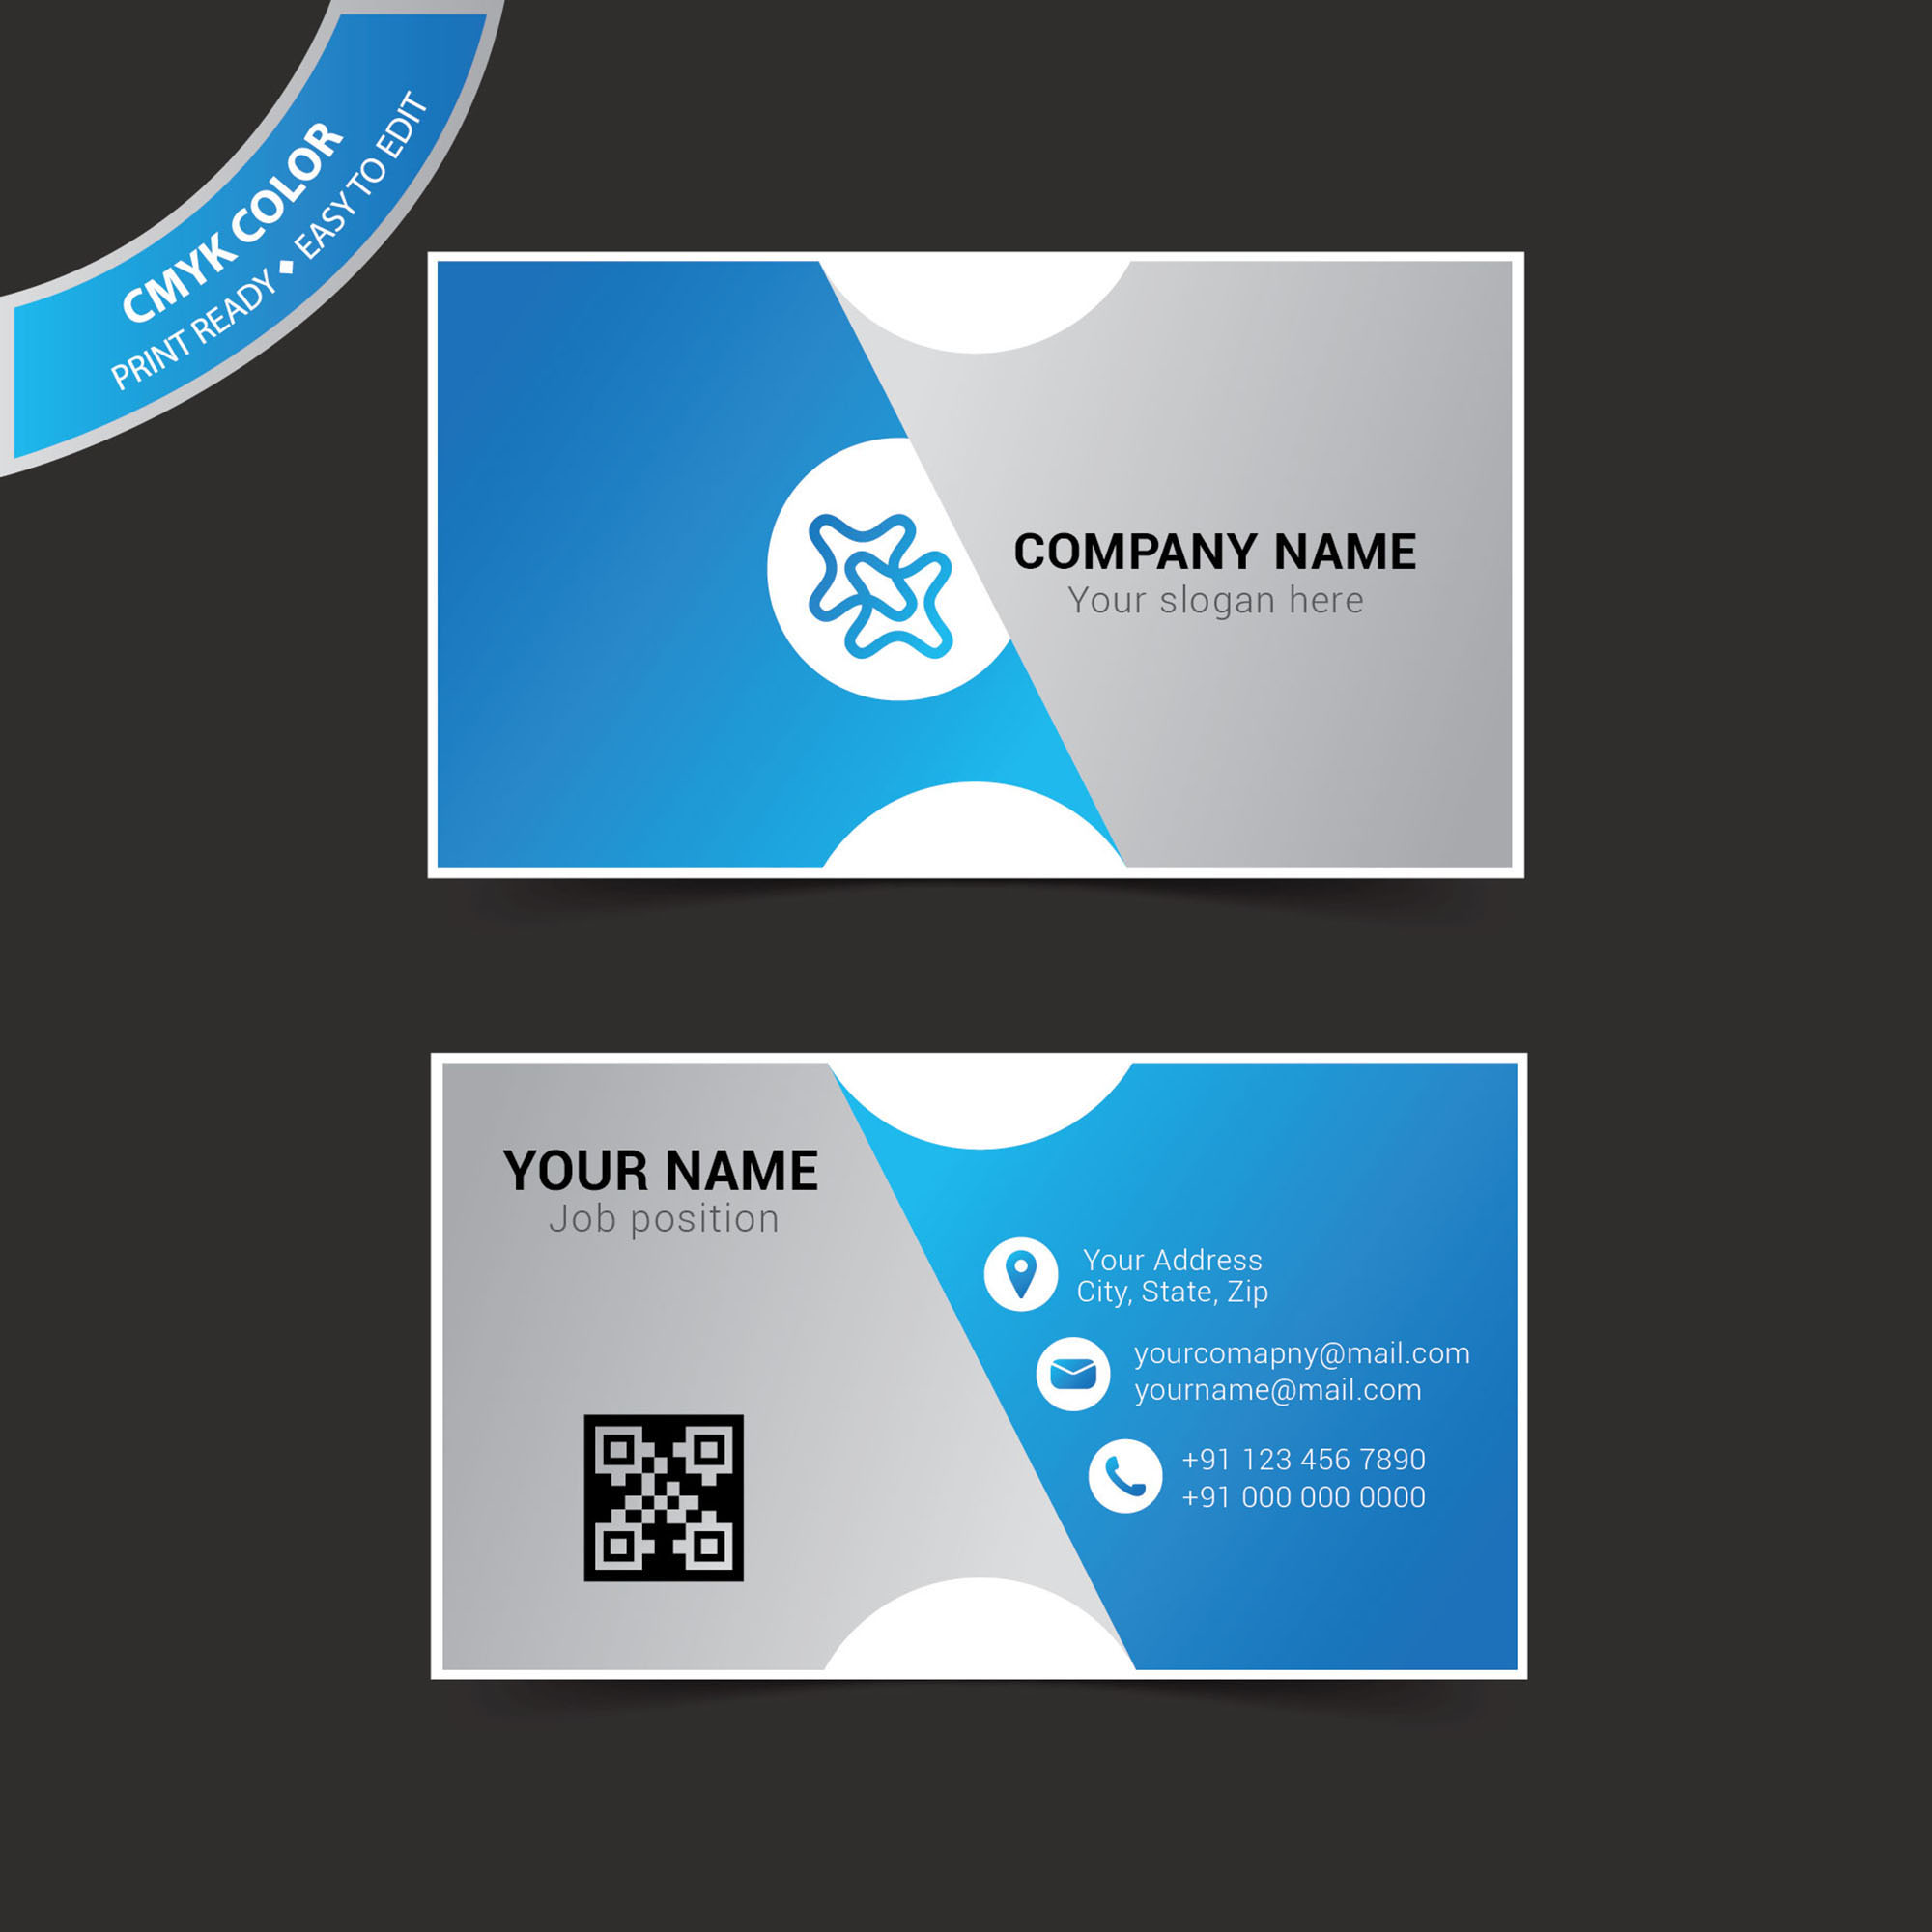 Business card template illustrator free vector wisxi abstract business card design business creative graphic layout template wajeb Image collections